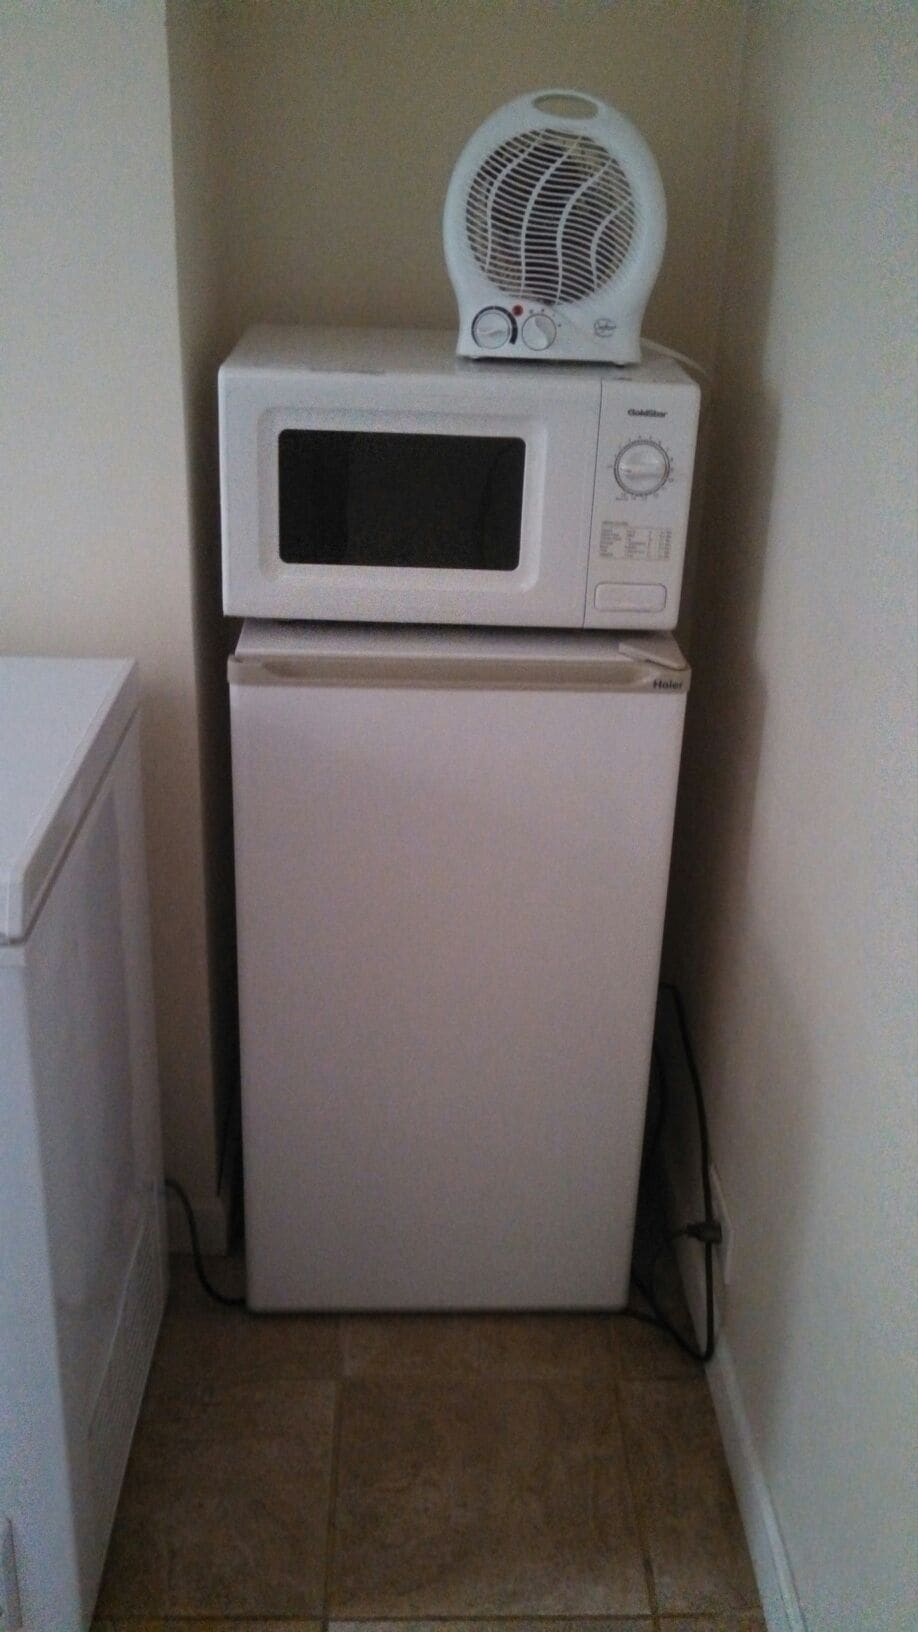 Dorm fridge and microwave available for longer stays and by request (extra charge for use).